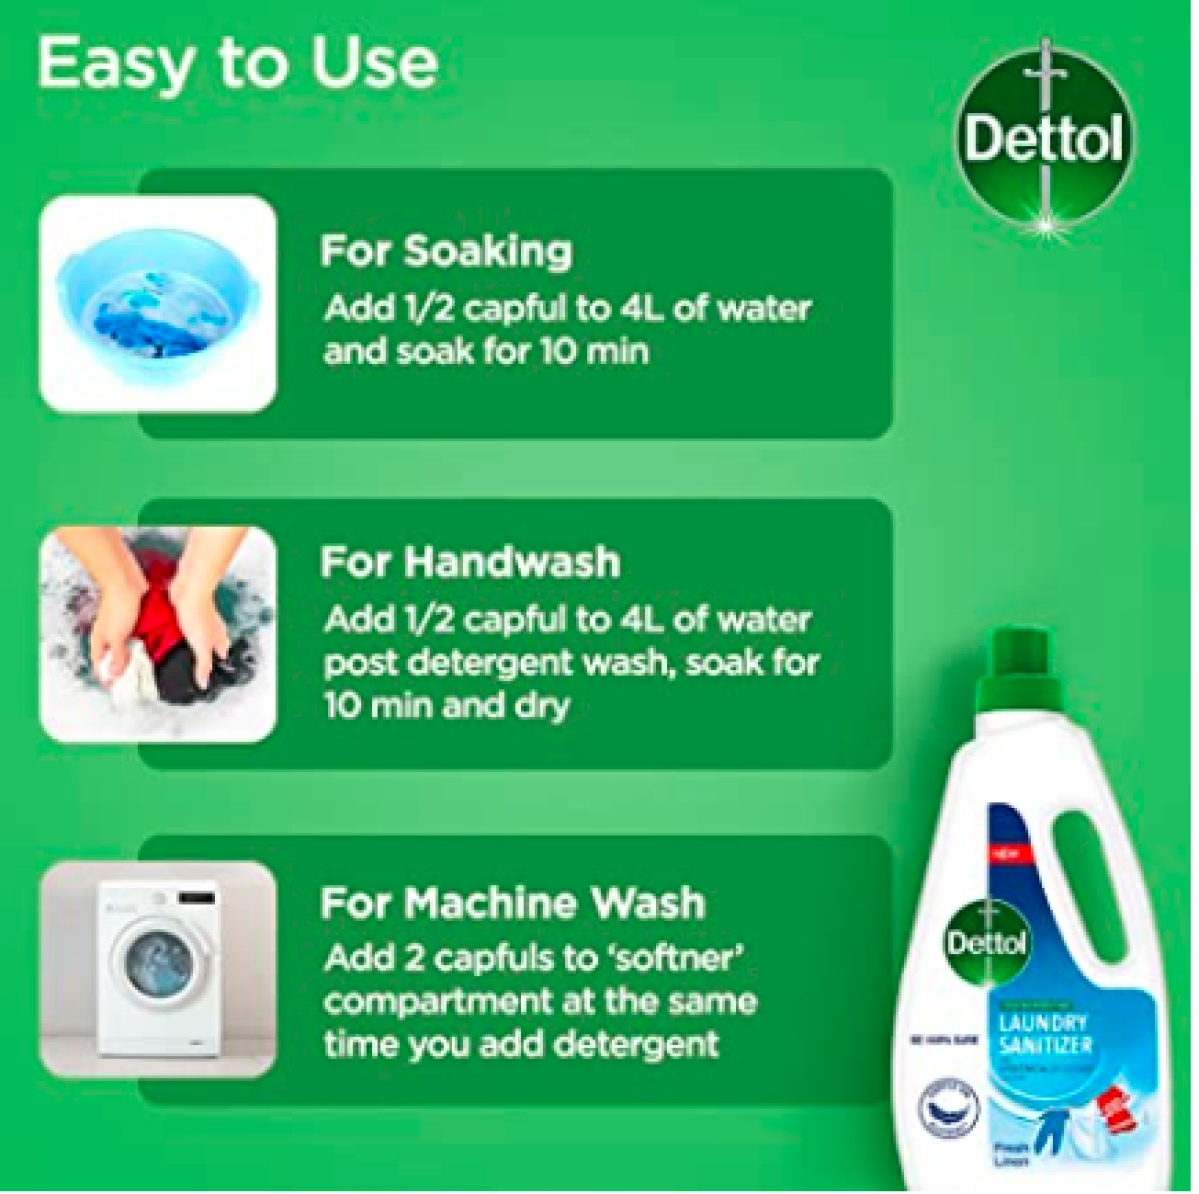 Dettol's new ads place its laundry sanitiser as part of daily laundry cycle